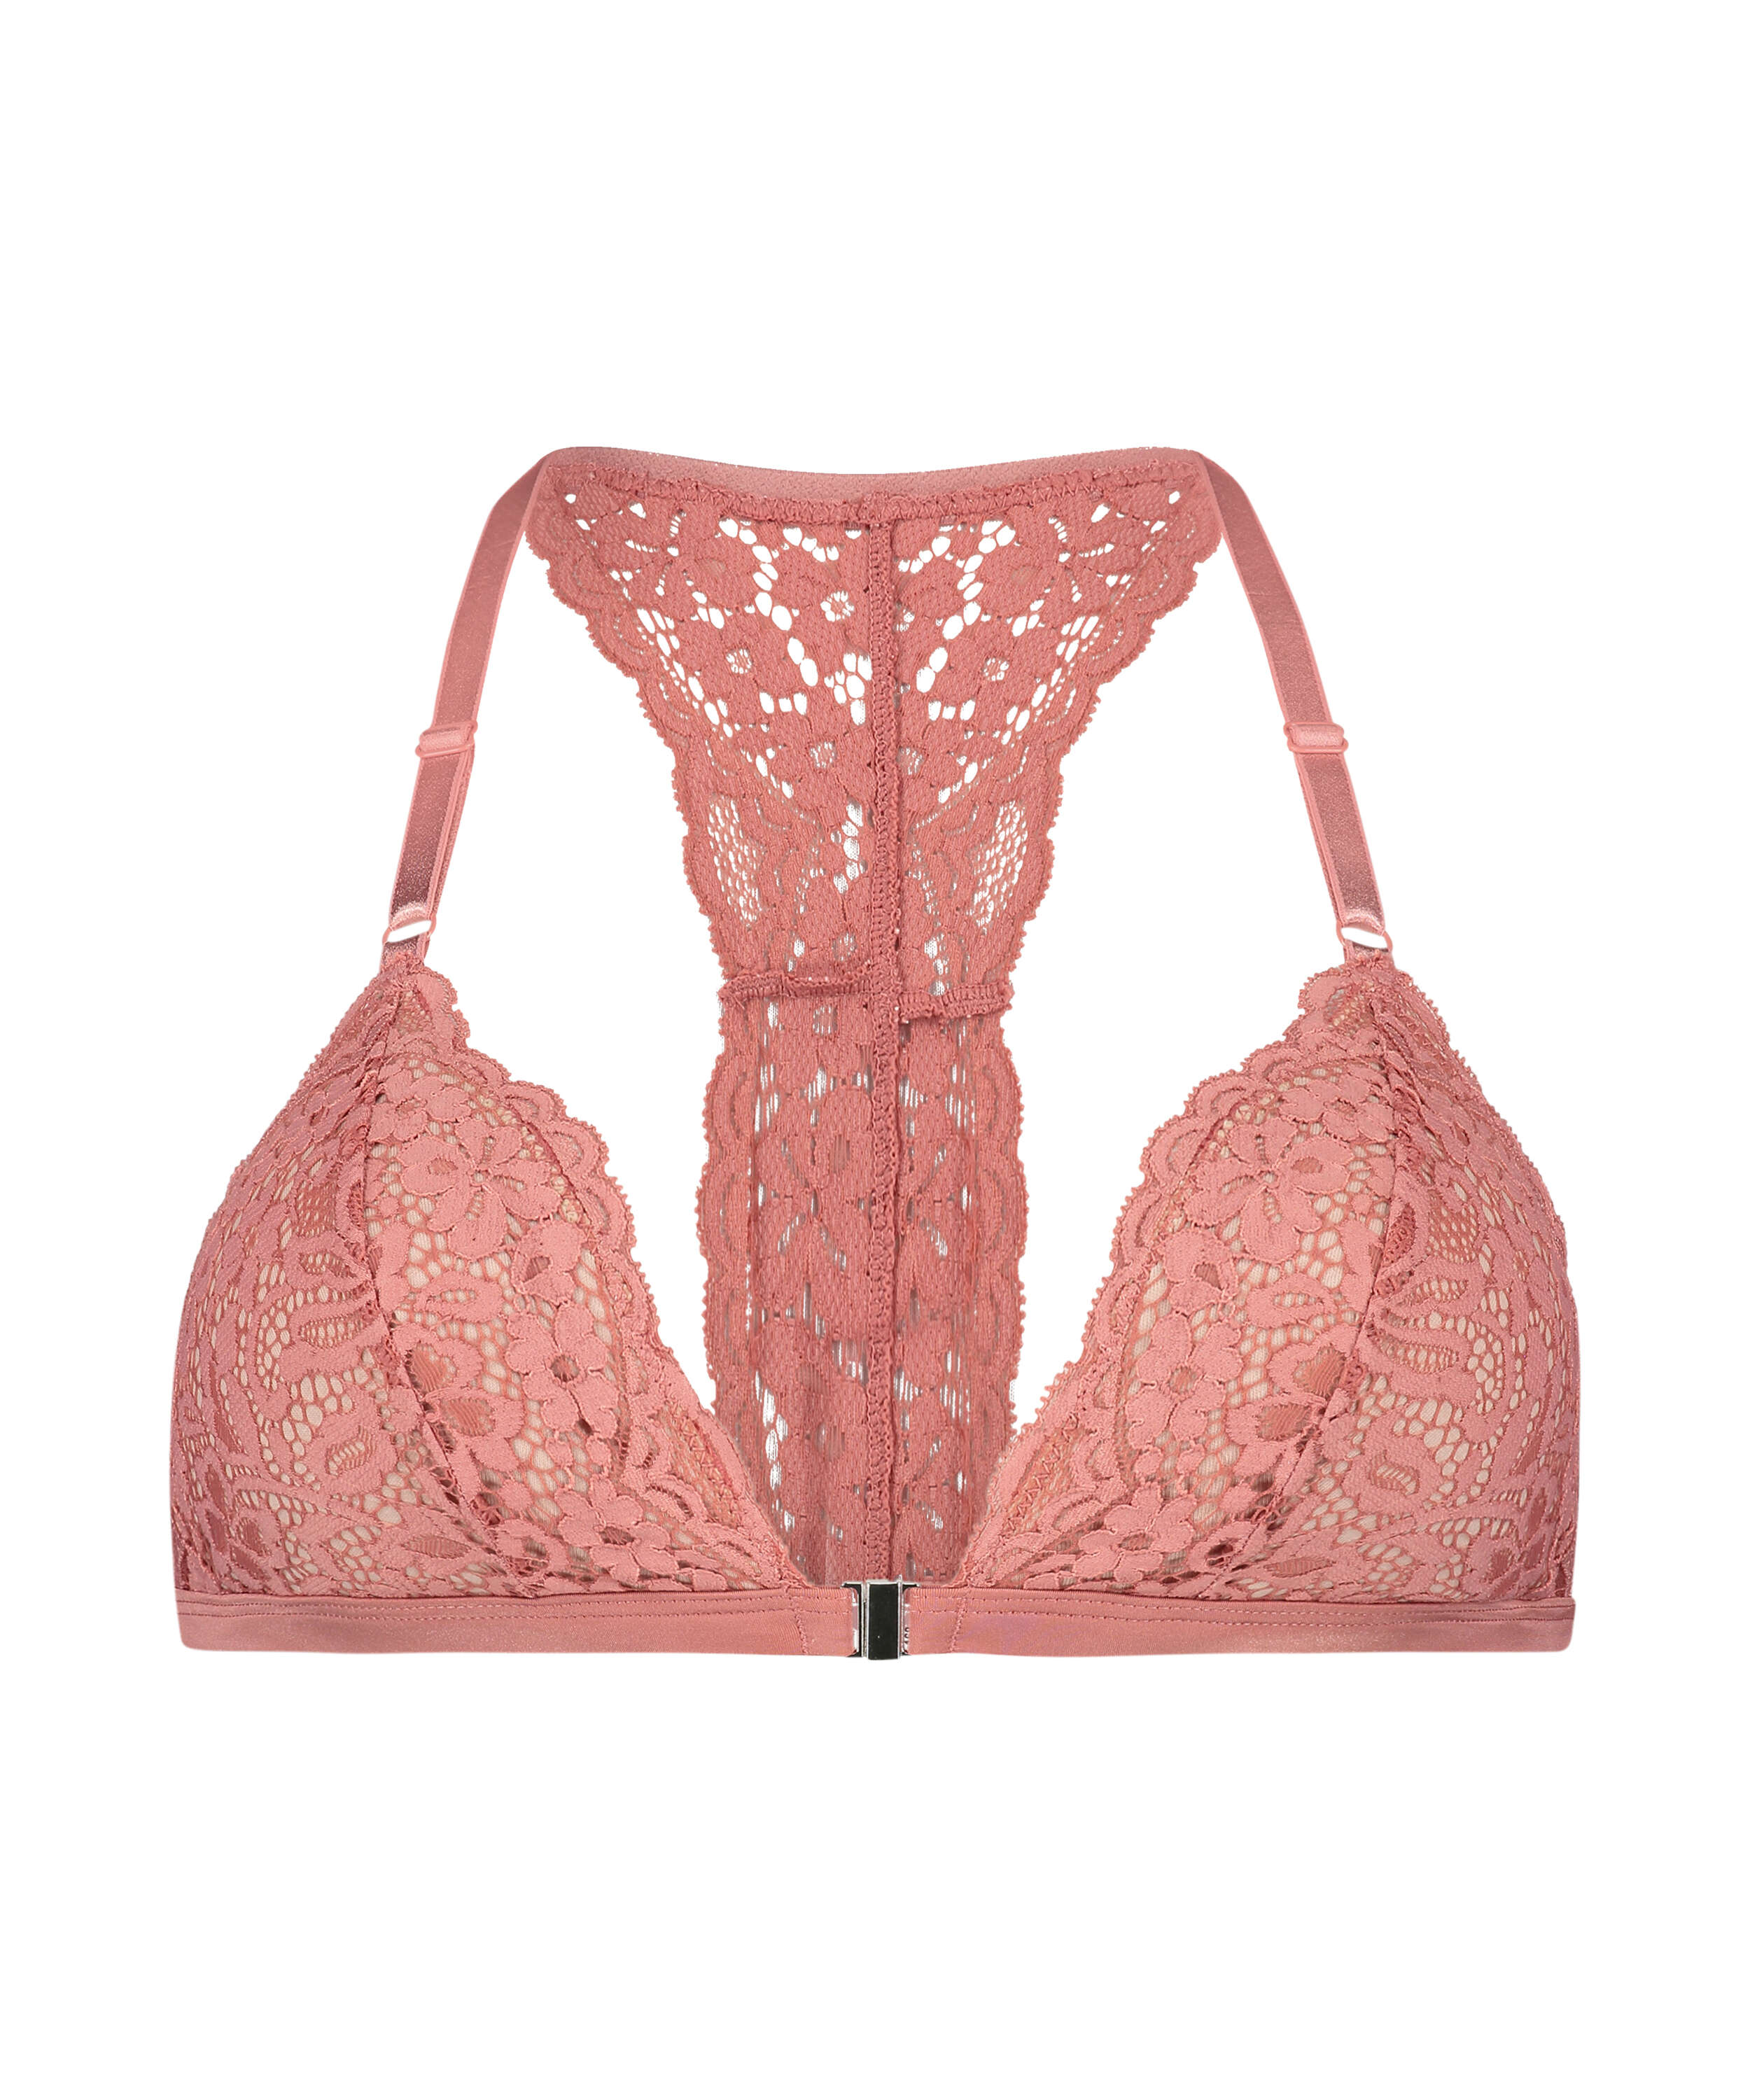 Bralette triangular preformado Rose, Rosa, main